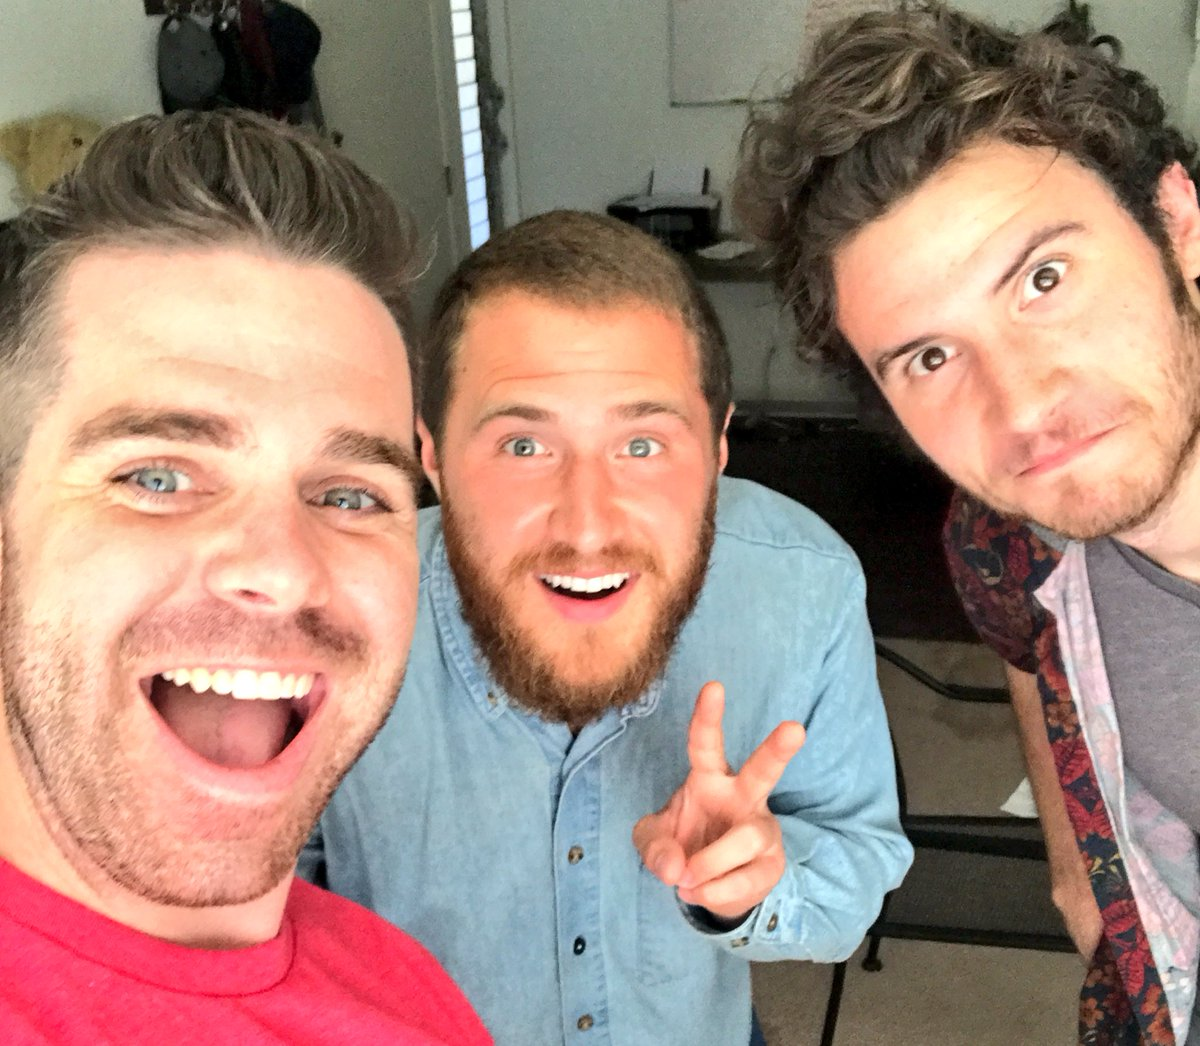 Mike Posner with comedians Ry Doon and Brandon Calvillo - October 18, 2017